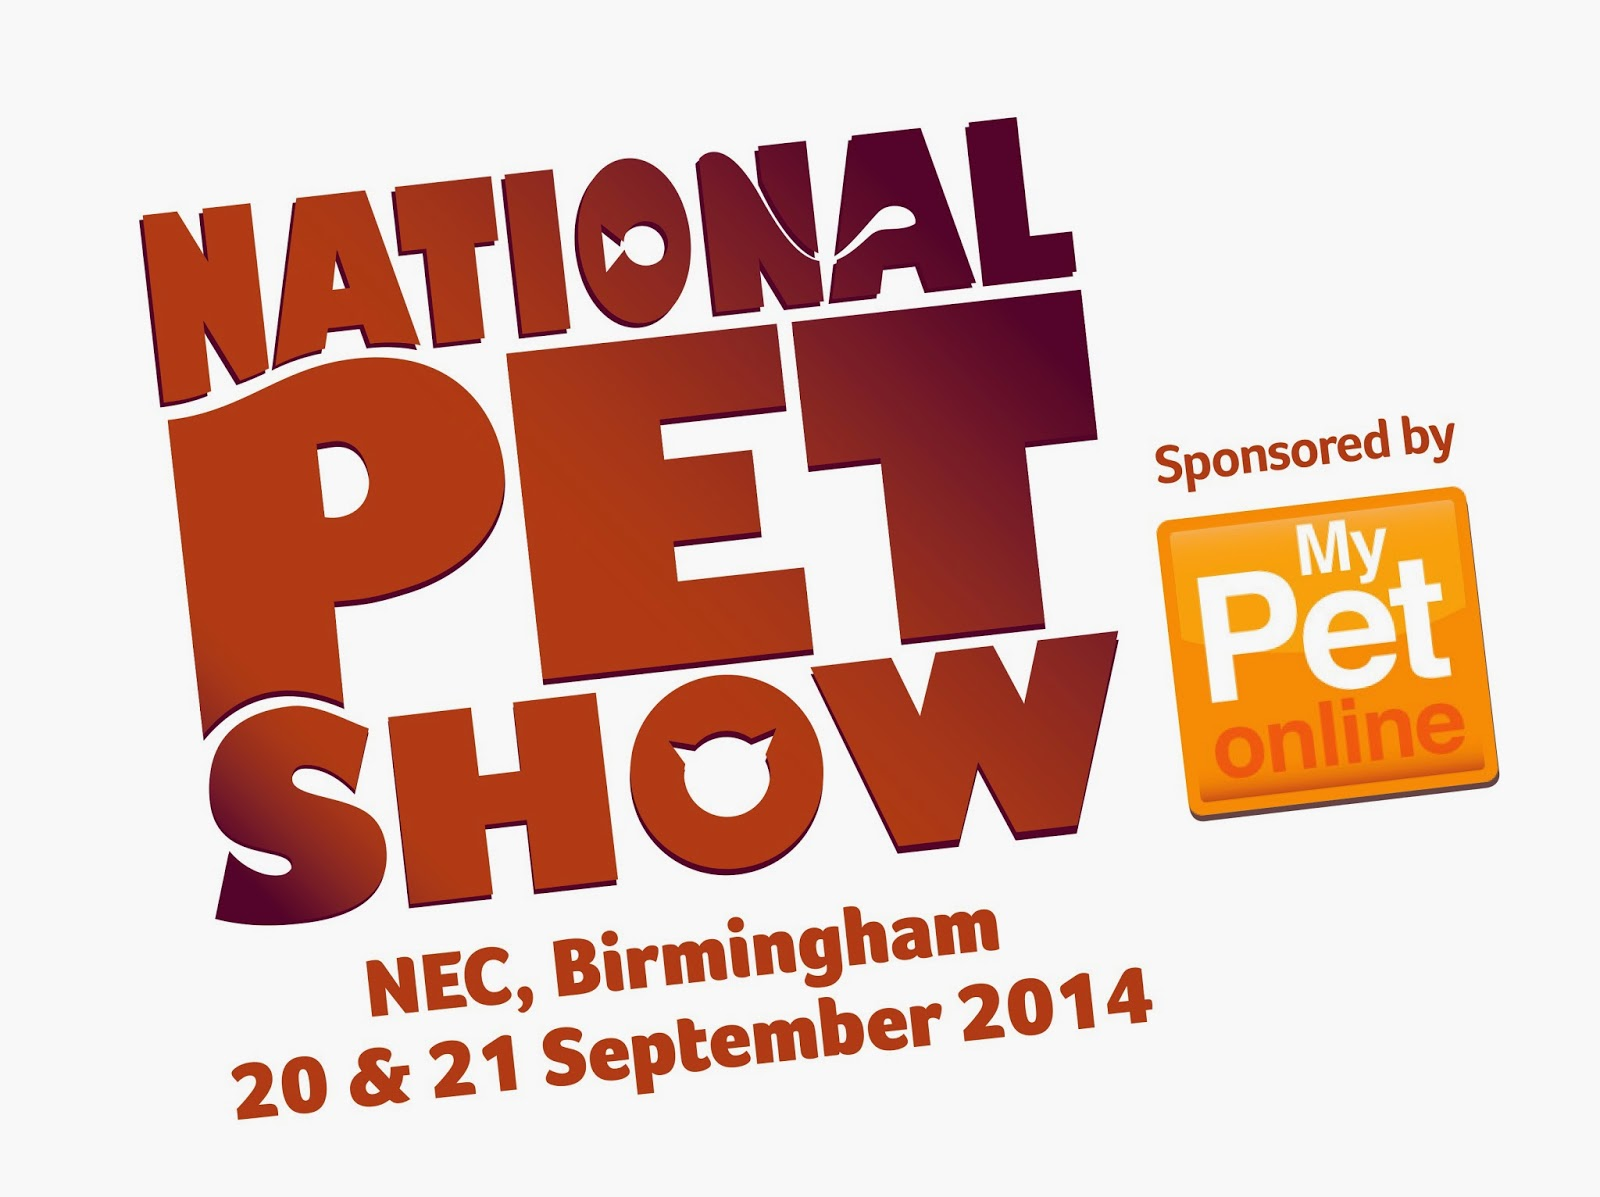 National Pet show Birmingham